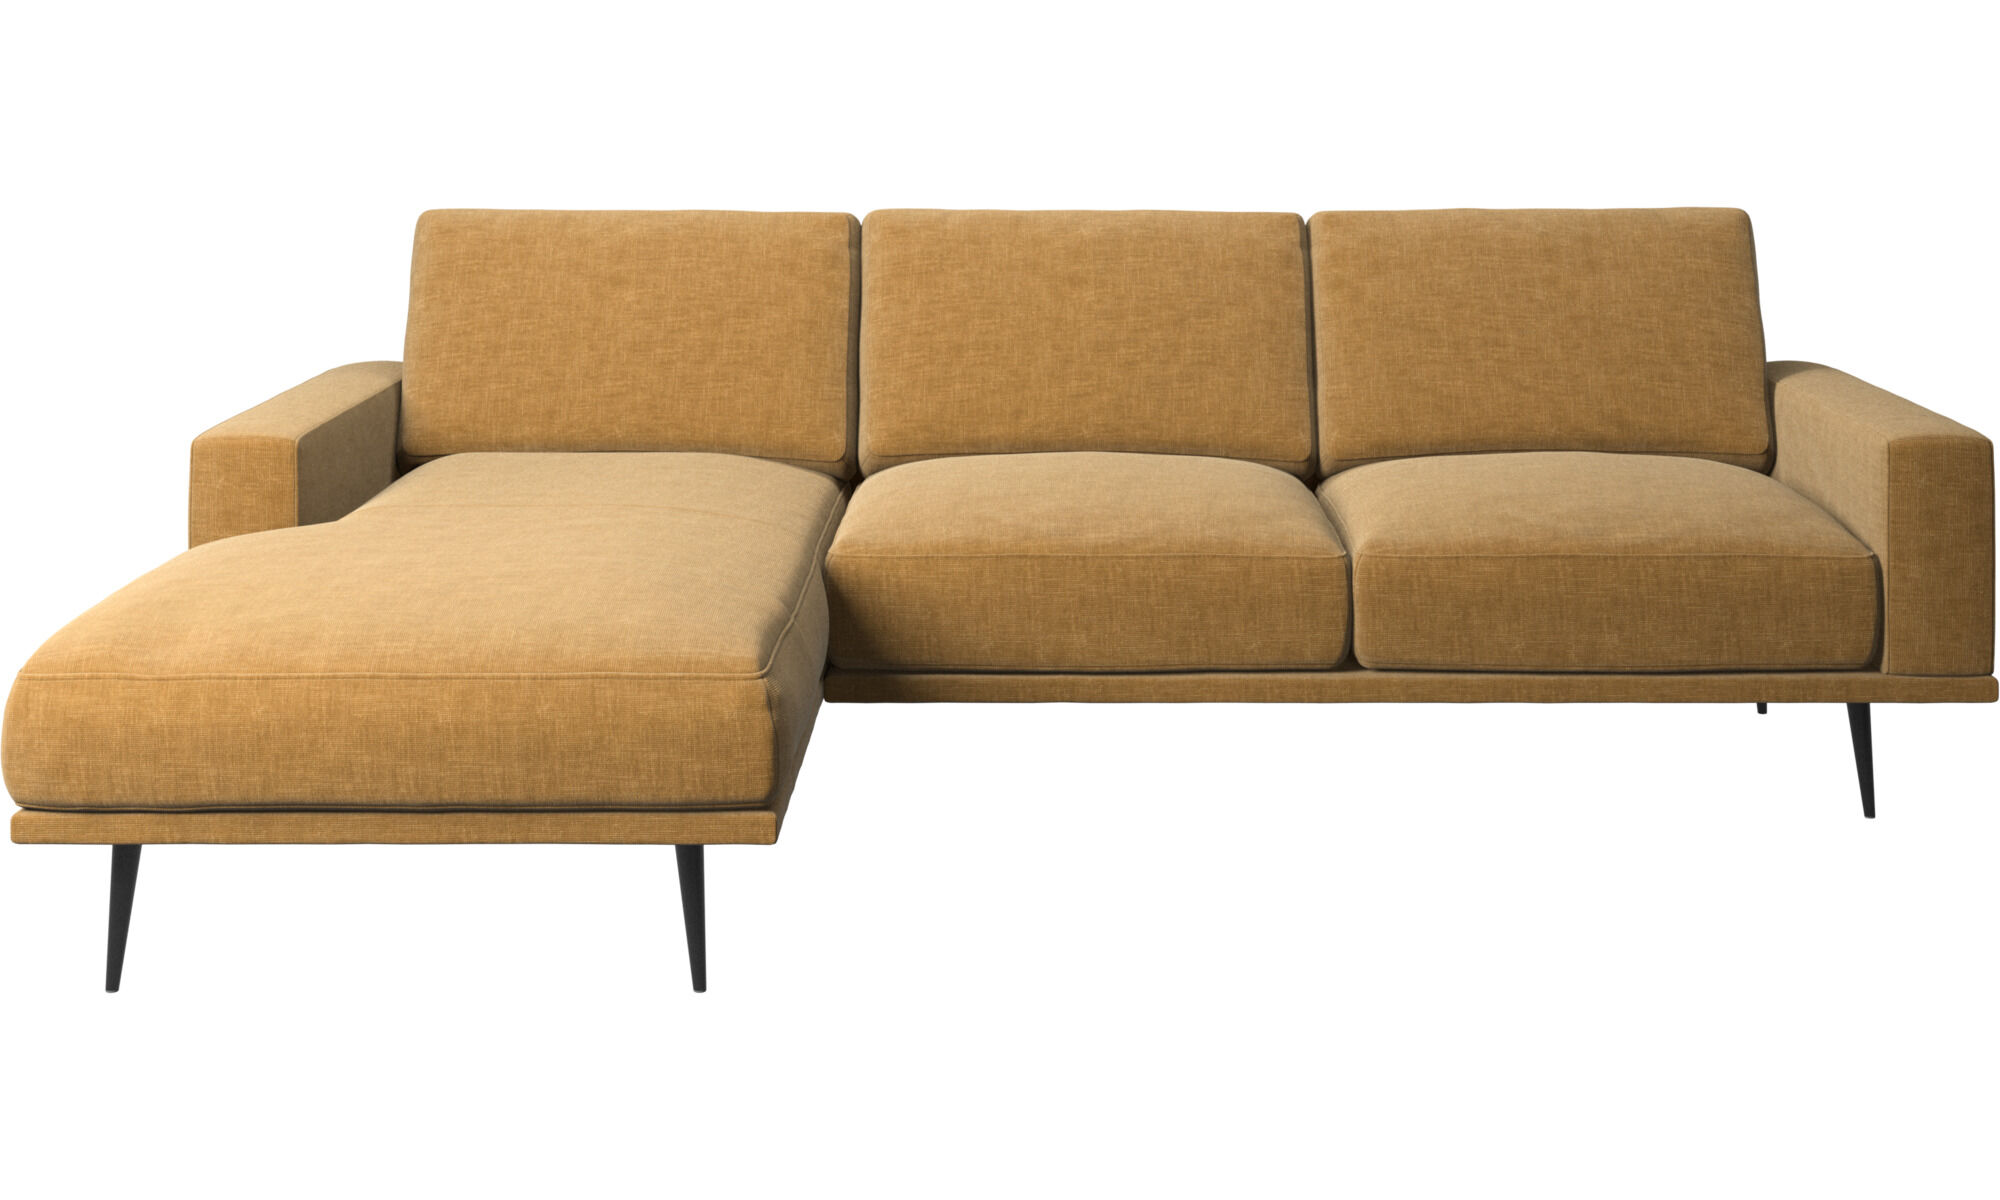 Samt Sofa Kaufen Samt Sofa Kaufen Beautiful Samt Sofa Altrosa X X With Samt Sofa